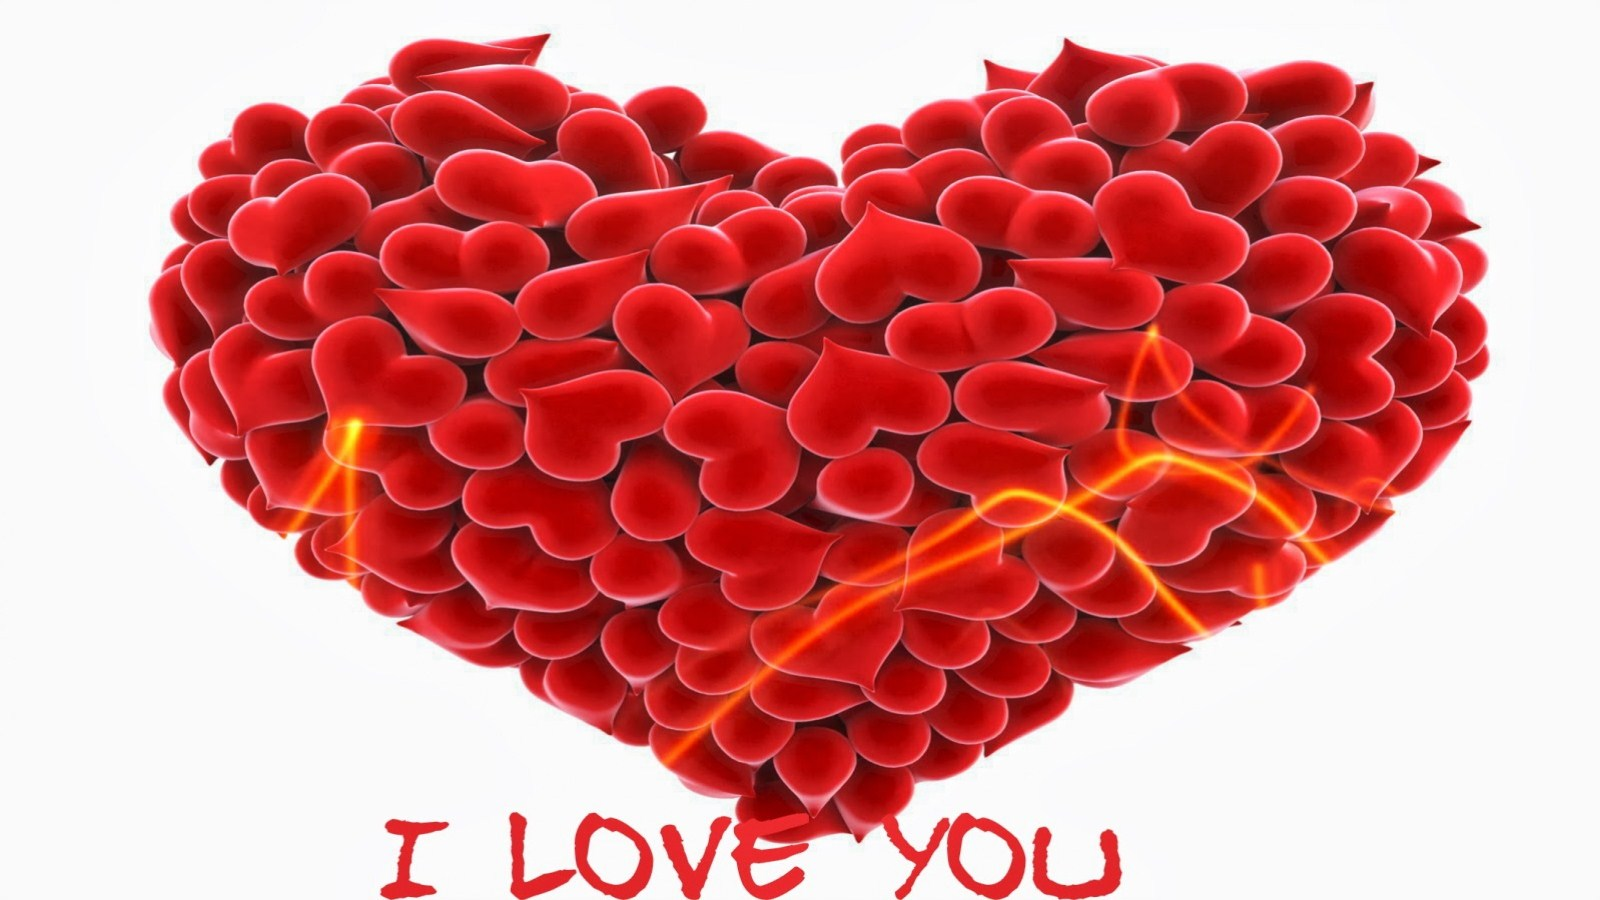 I Love You Heart HD Images